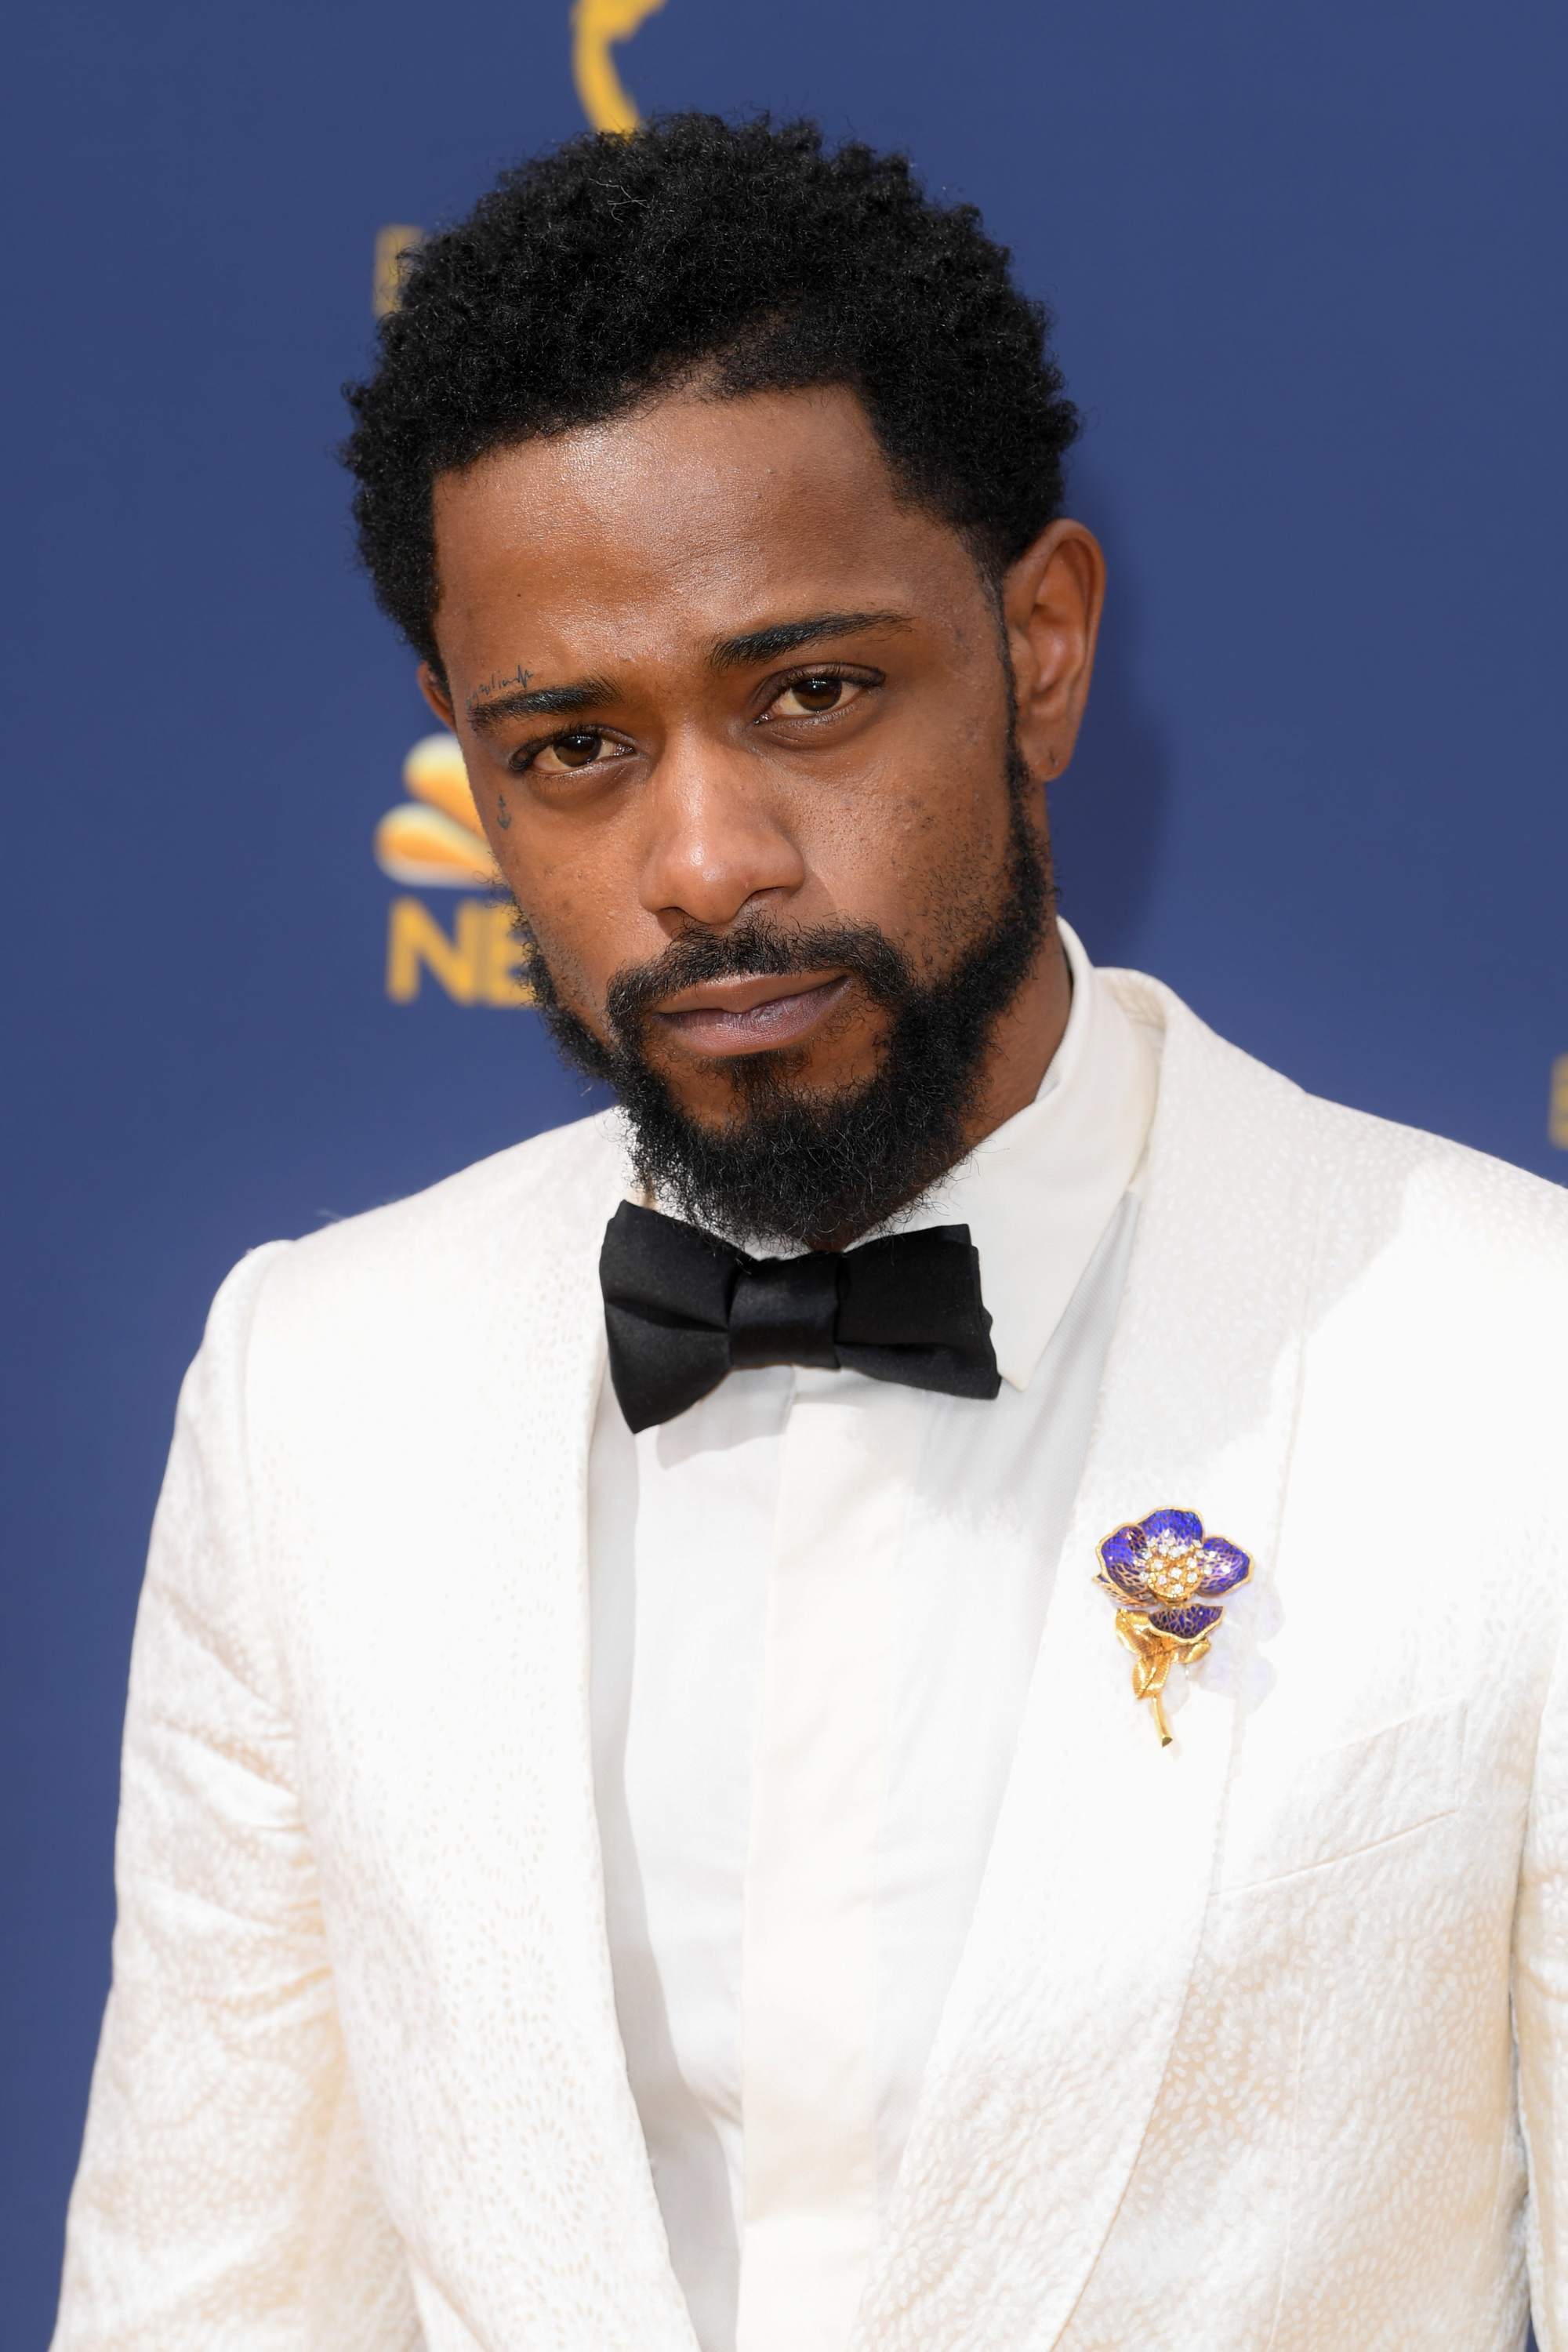 Get Out actor Lakeith Stanfield at the Emmy Awards 2018 with